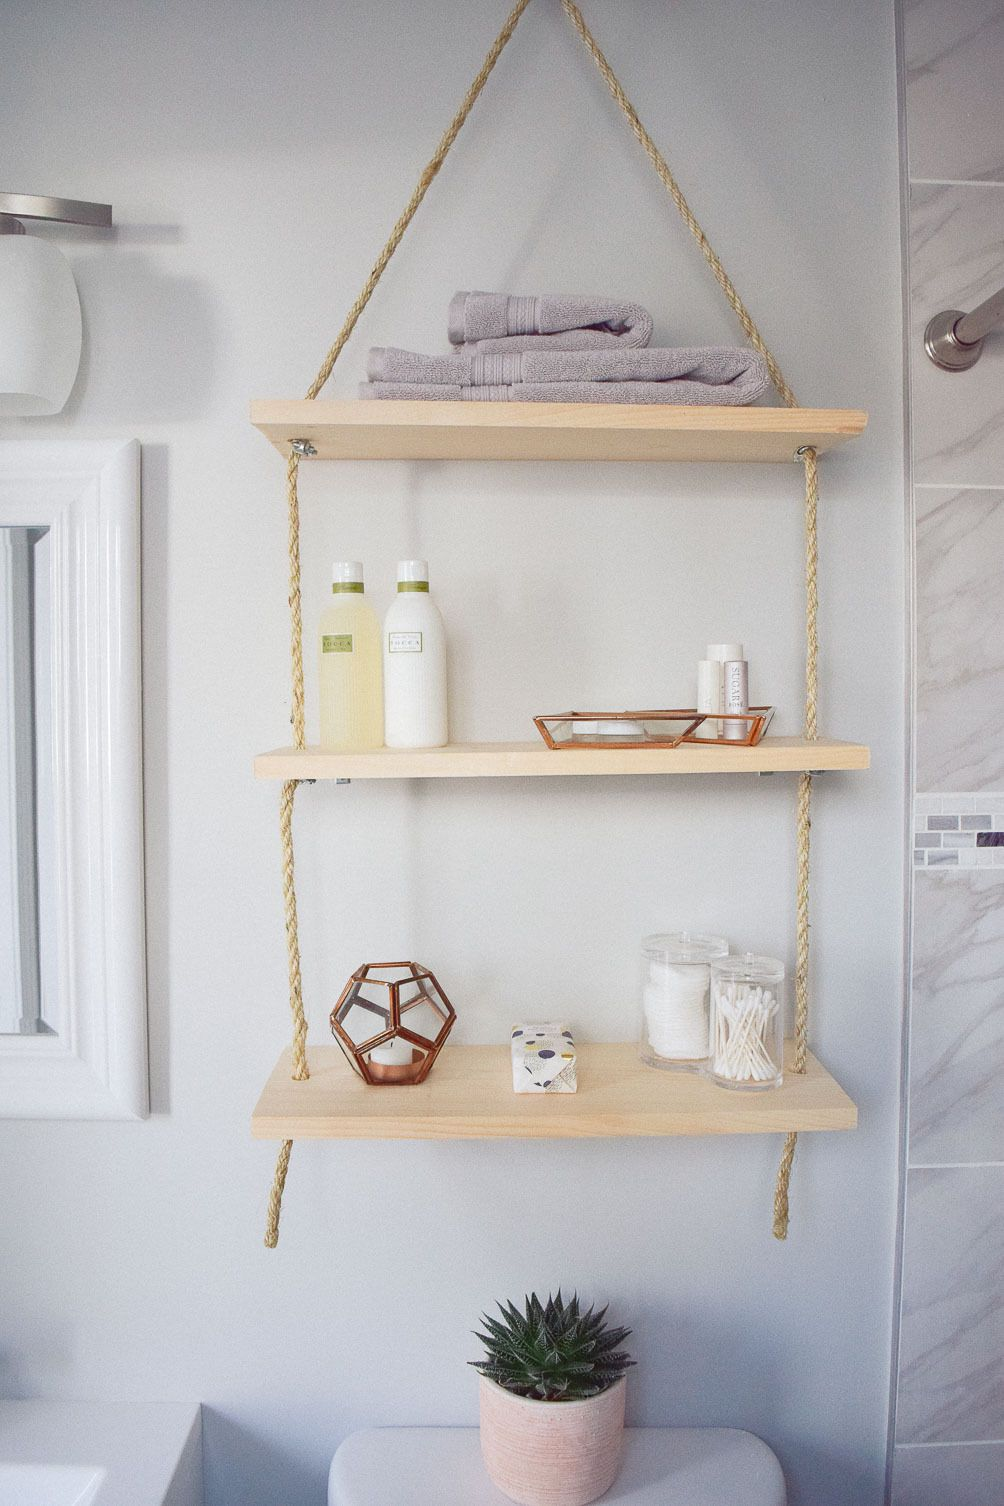 sharing an idea to update home decor with diy hanging shelves for ...